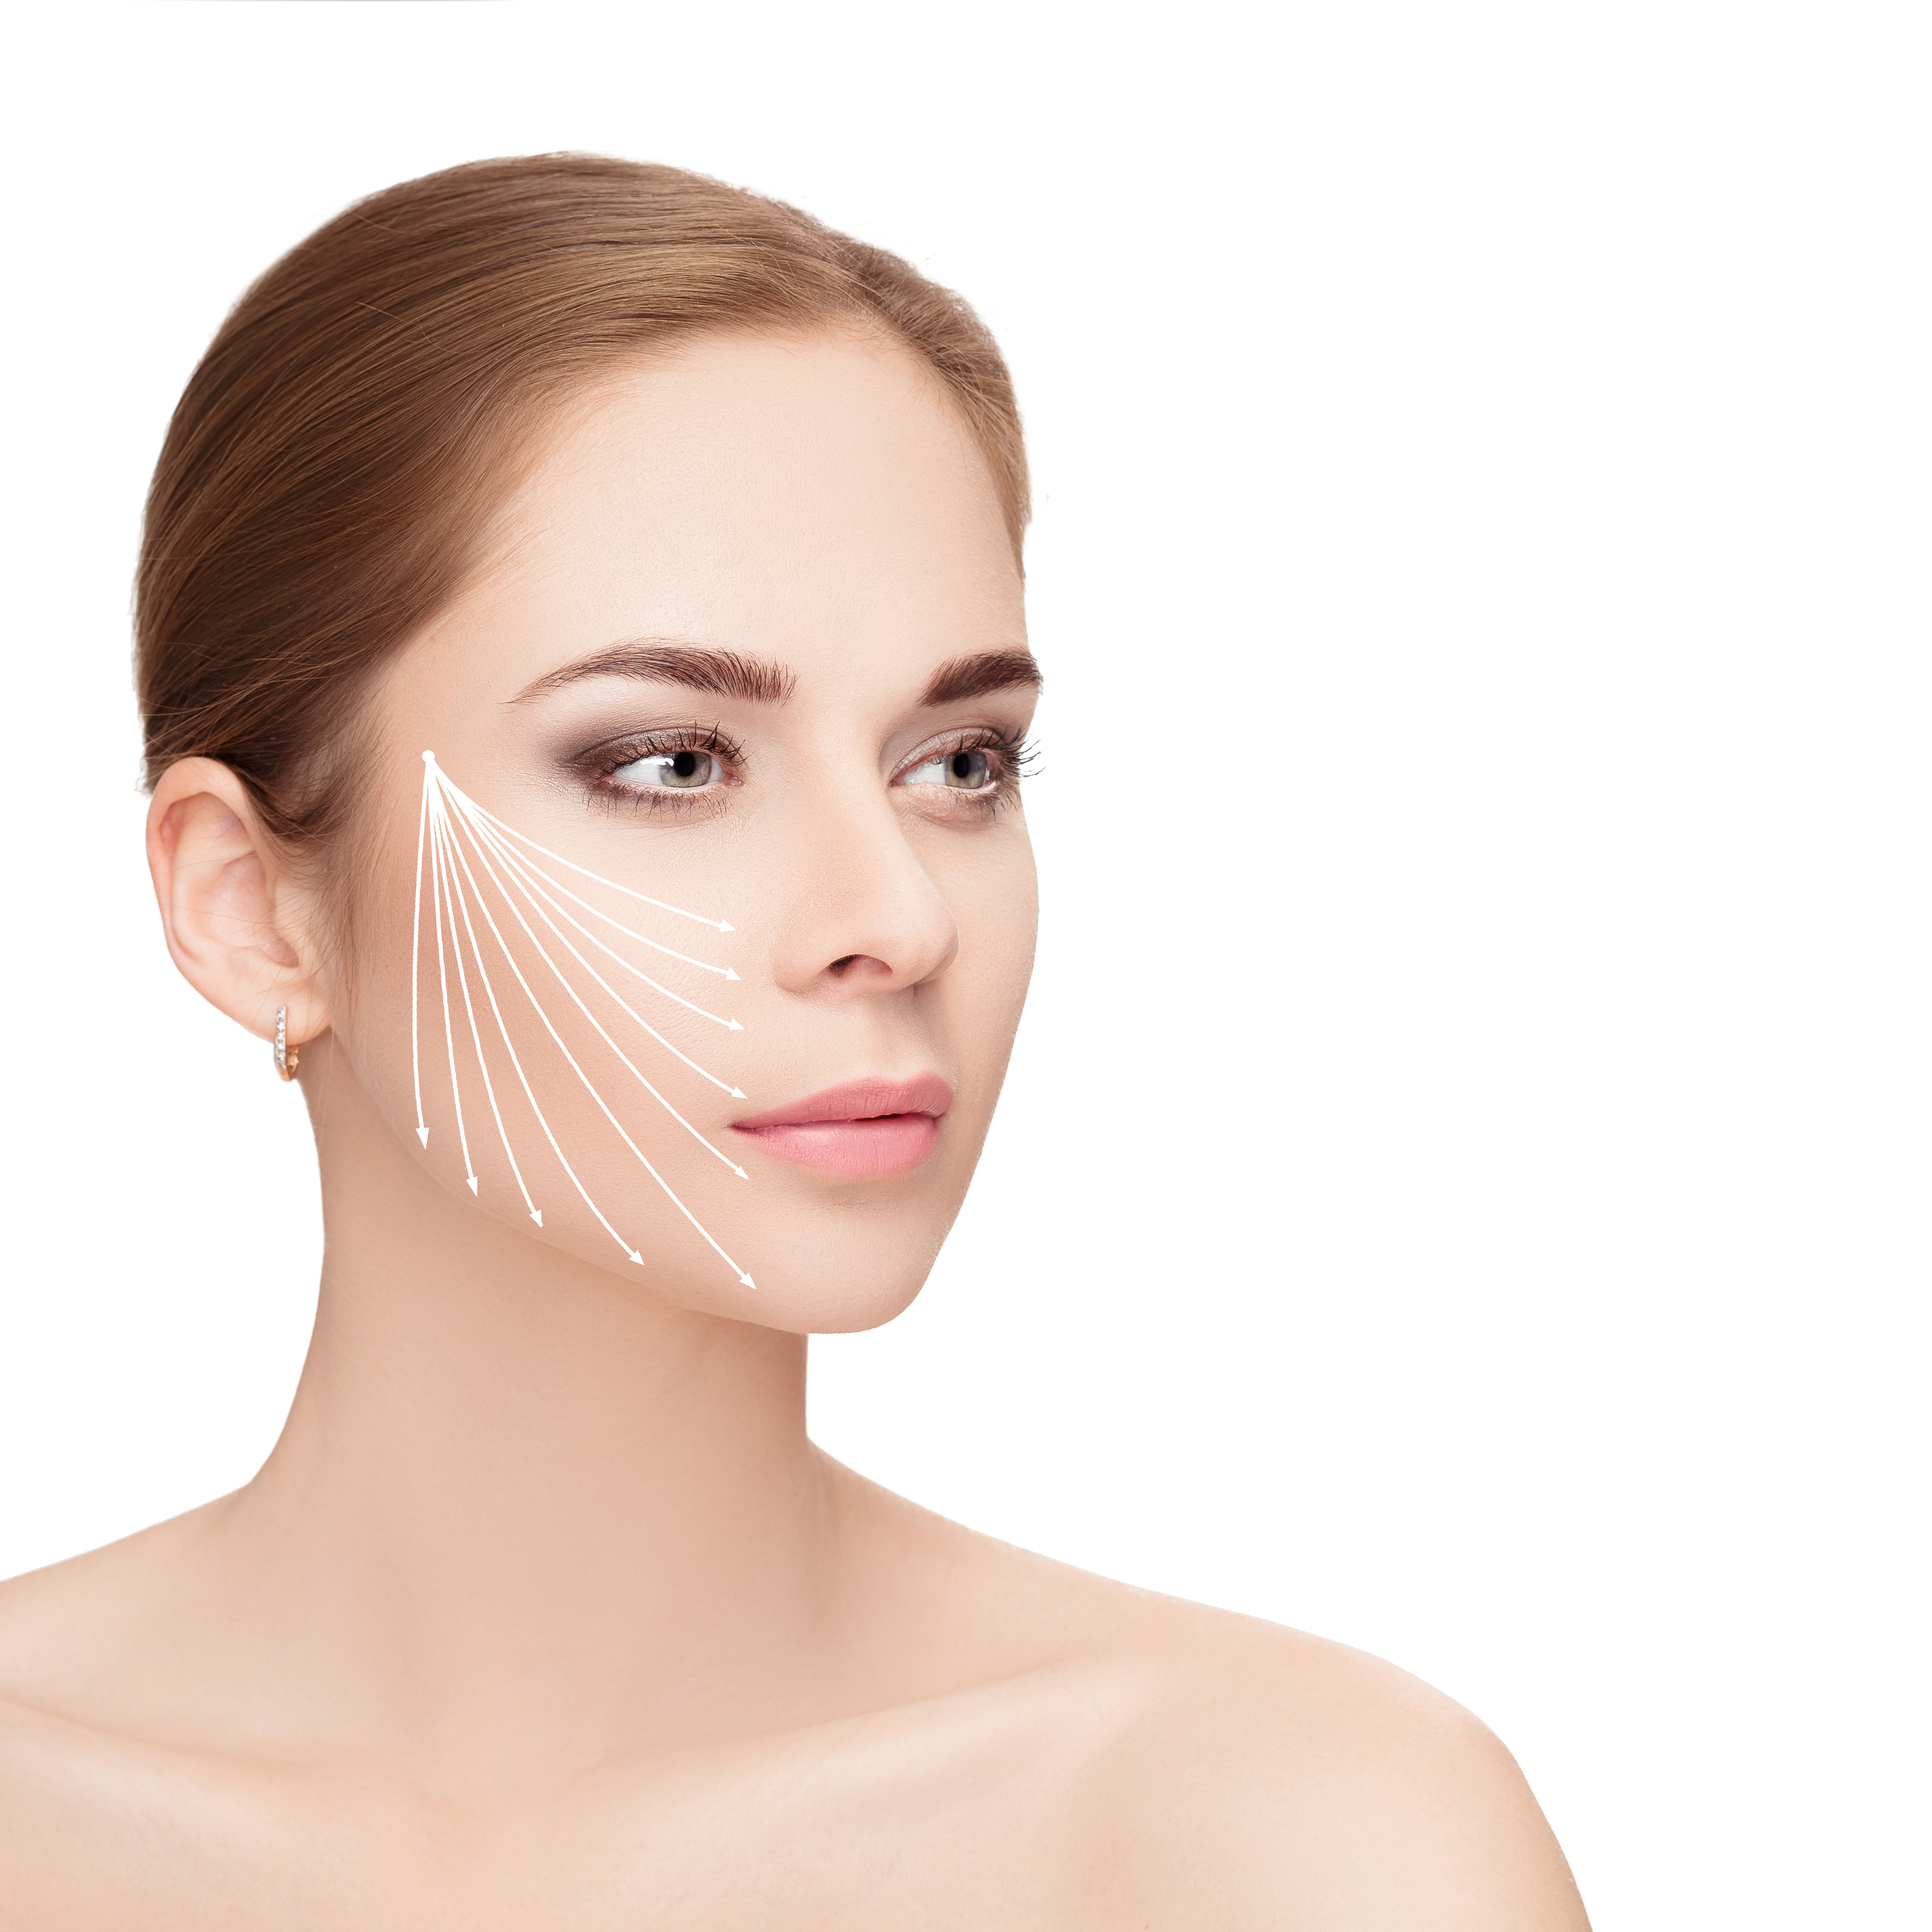 Facelift Treatment in Hyderabad, Facelift Treatment in Karimnagar, Facelift Treatment in Vijayawada